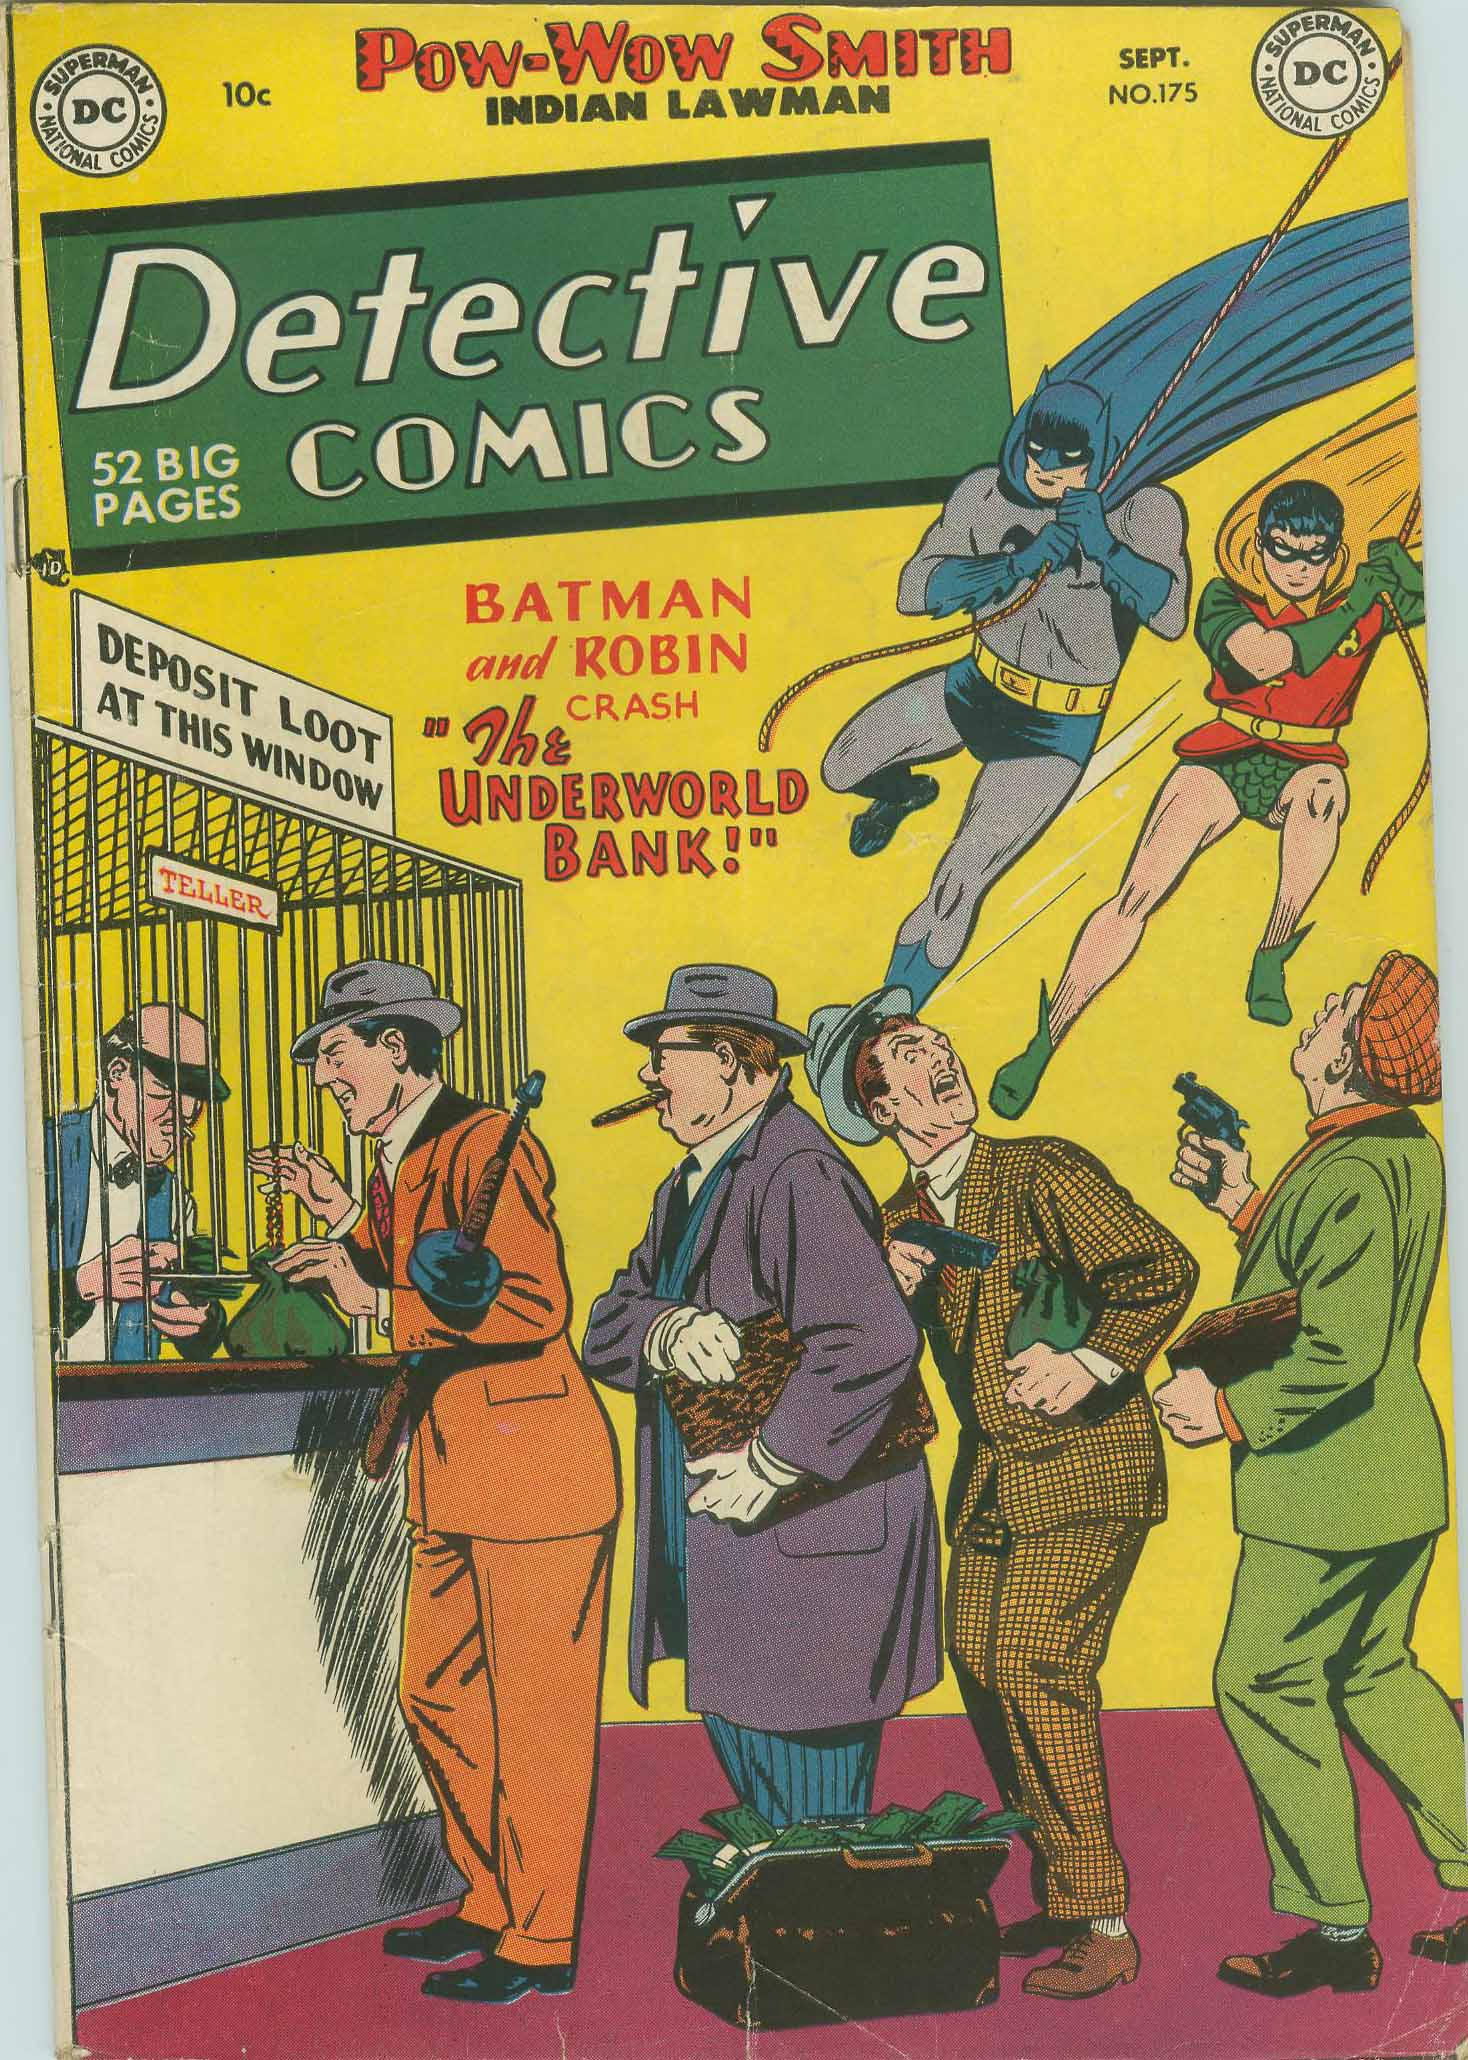 Read online Detective Comics (1937) comic -  Issue #175 - 1